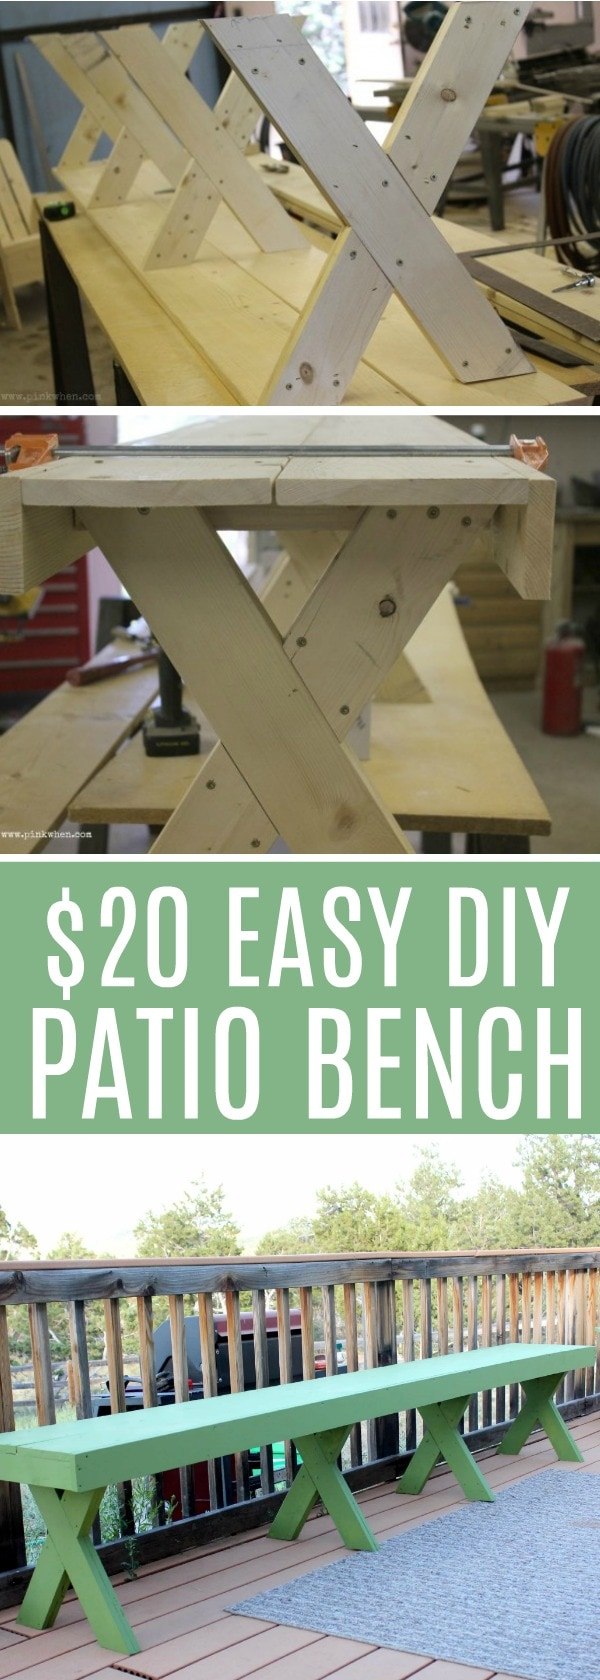 check out this 20 easy diy patio bench i feel a project starting - Diy Patio Bench